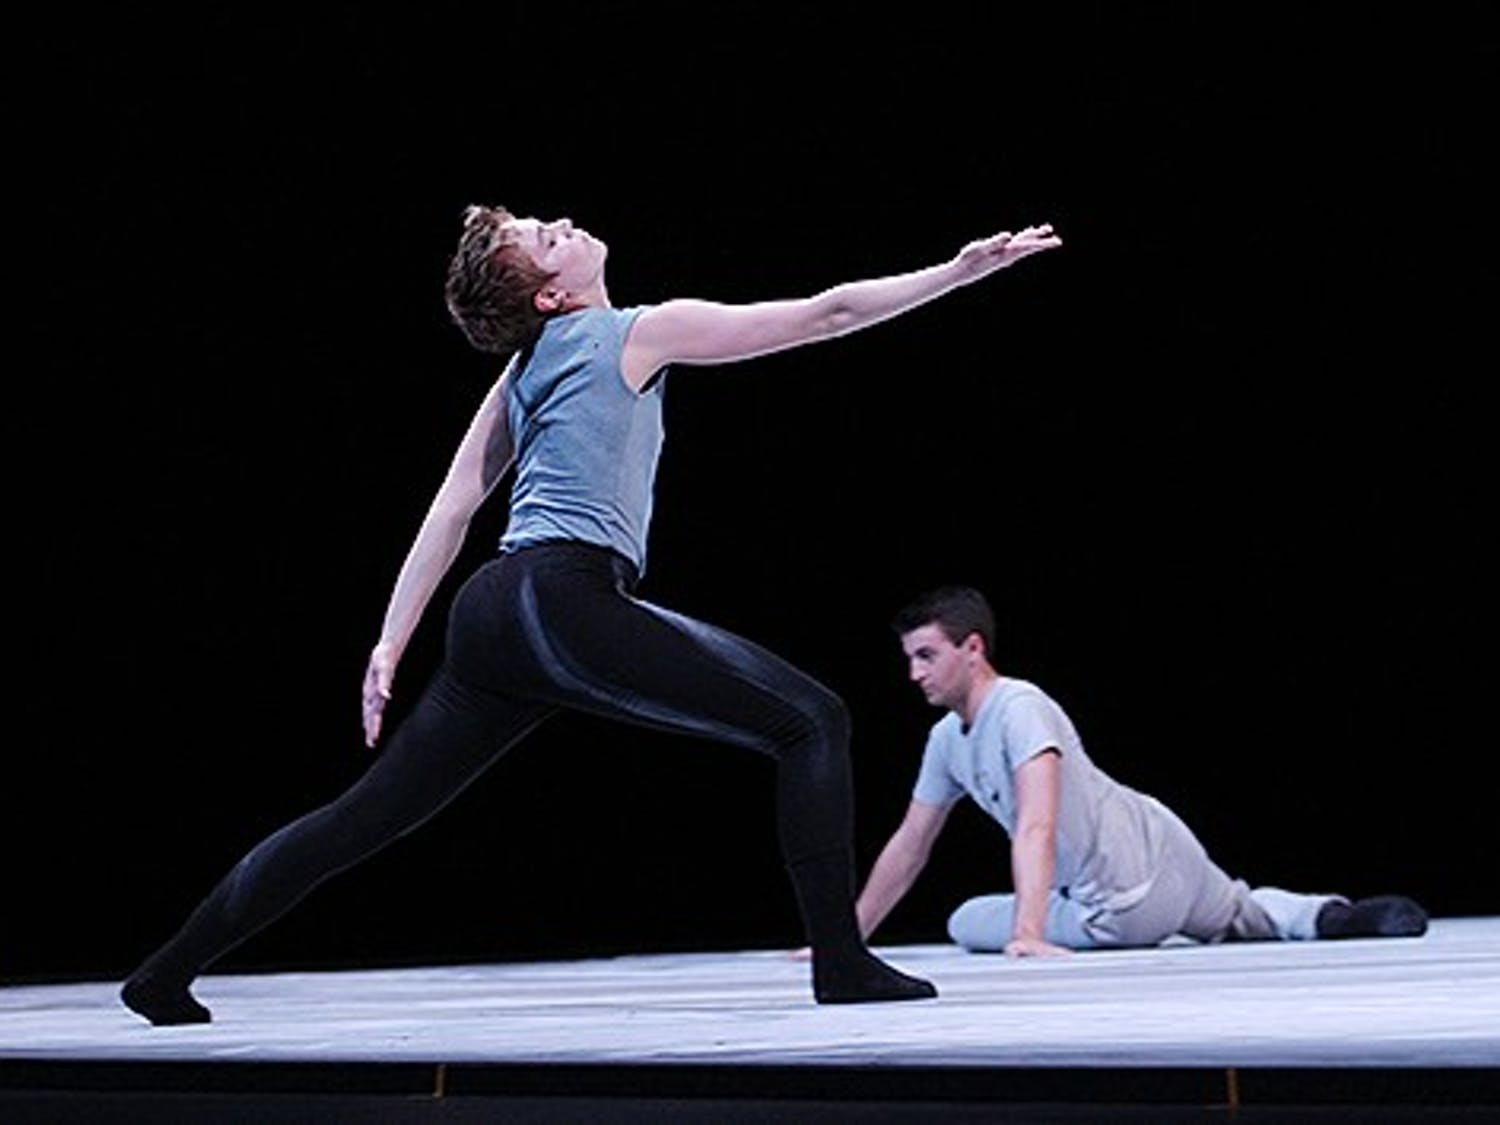 Shen Wei Dance Arts performs Rite of Spring staged by Kate Jewett in Memorial Hall Saturday and Sunday night at 8pm.